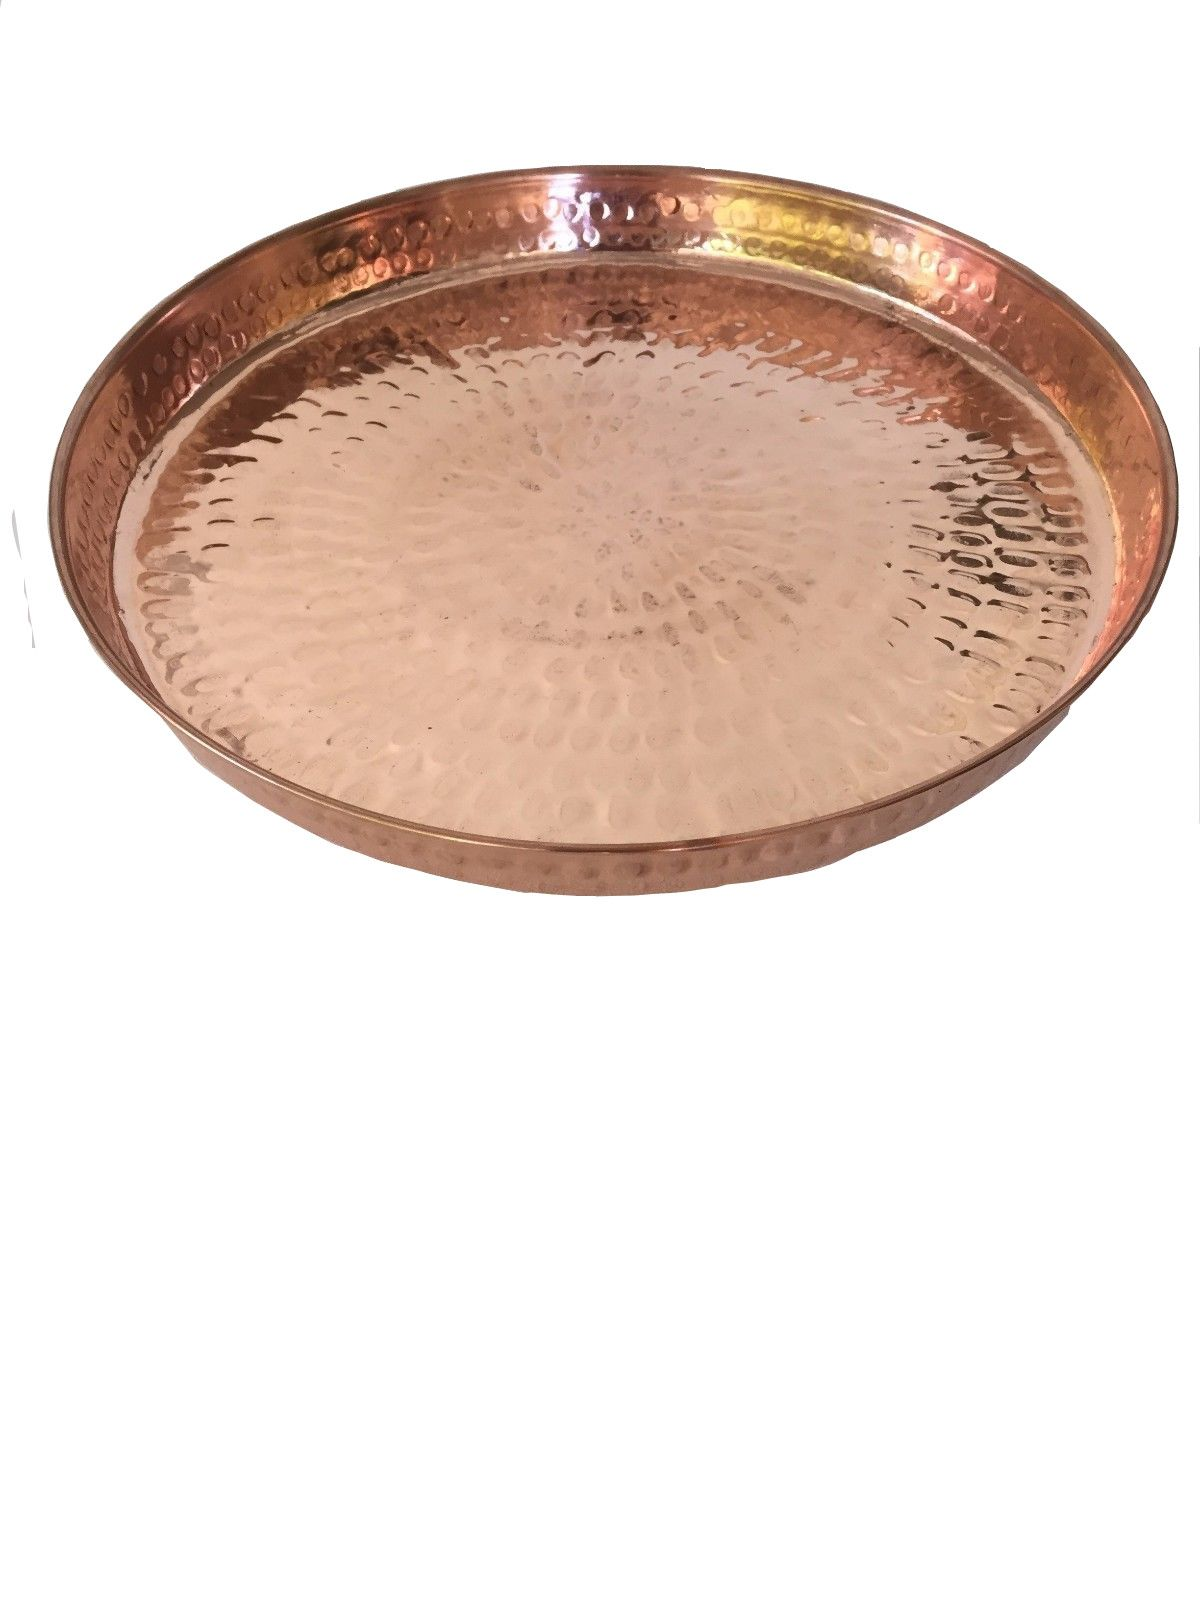 Entertain In Style With The Hammered Copper Round Serving Tray Perfect To Display On A Buffet Table Or On Top Of A Bar Ca Round Serving Tray Serving Tray Tray